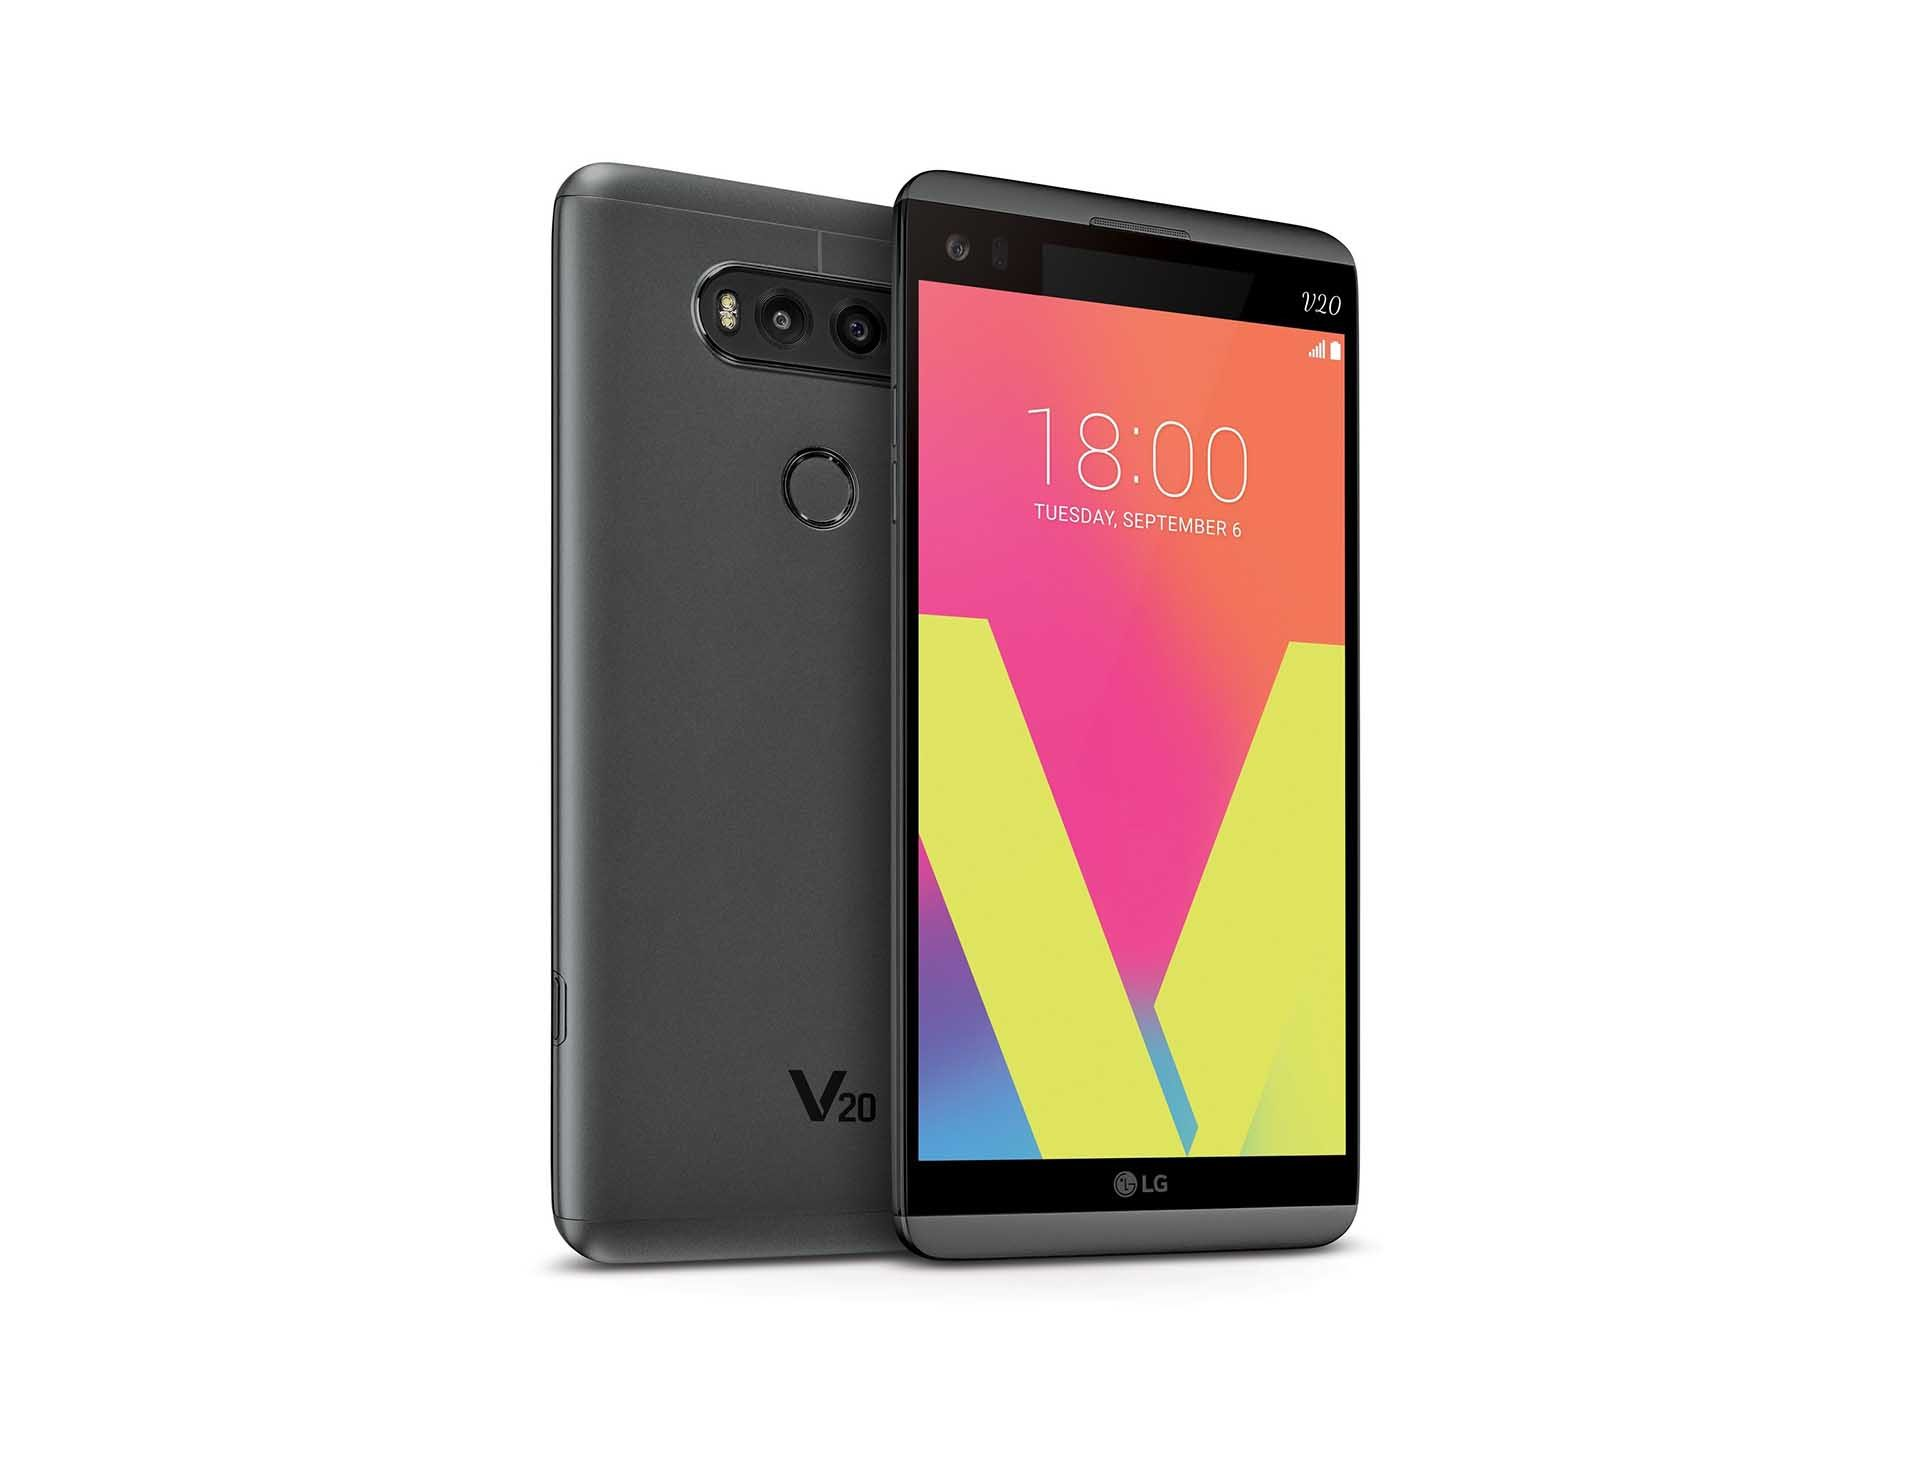 #2 in Our Best Gaming LG Smartphone List - LG V20